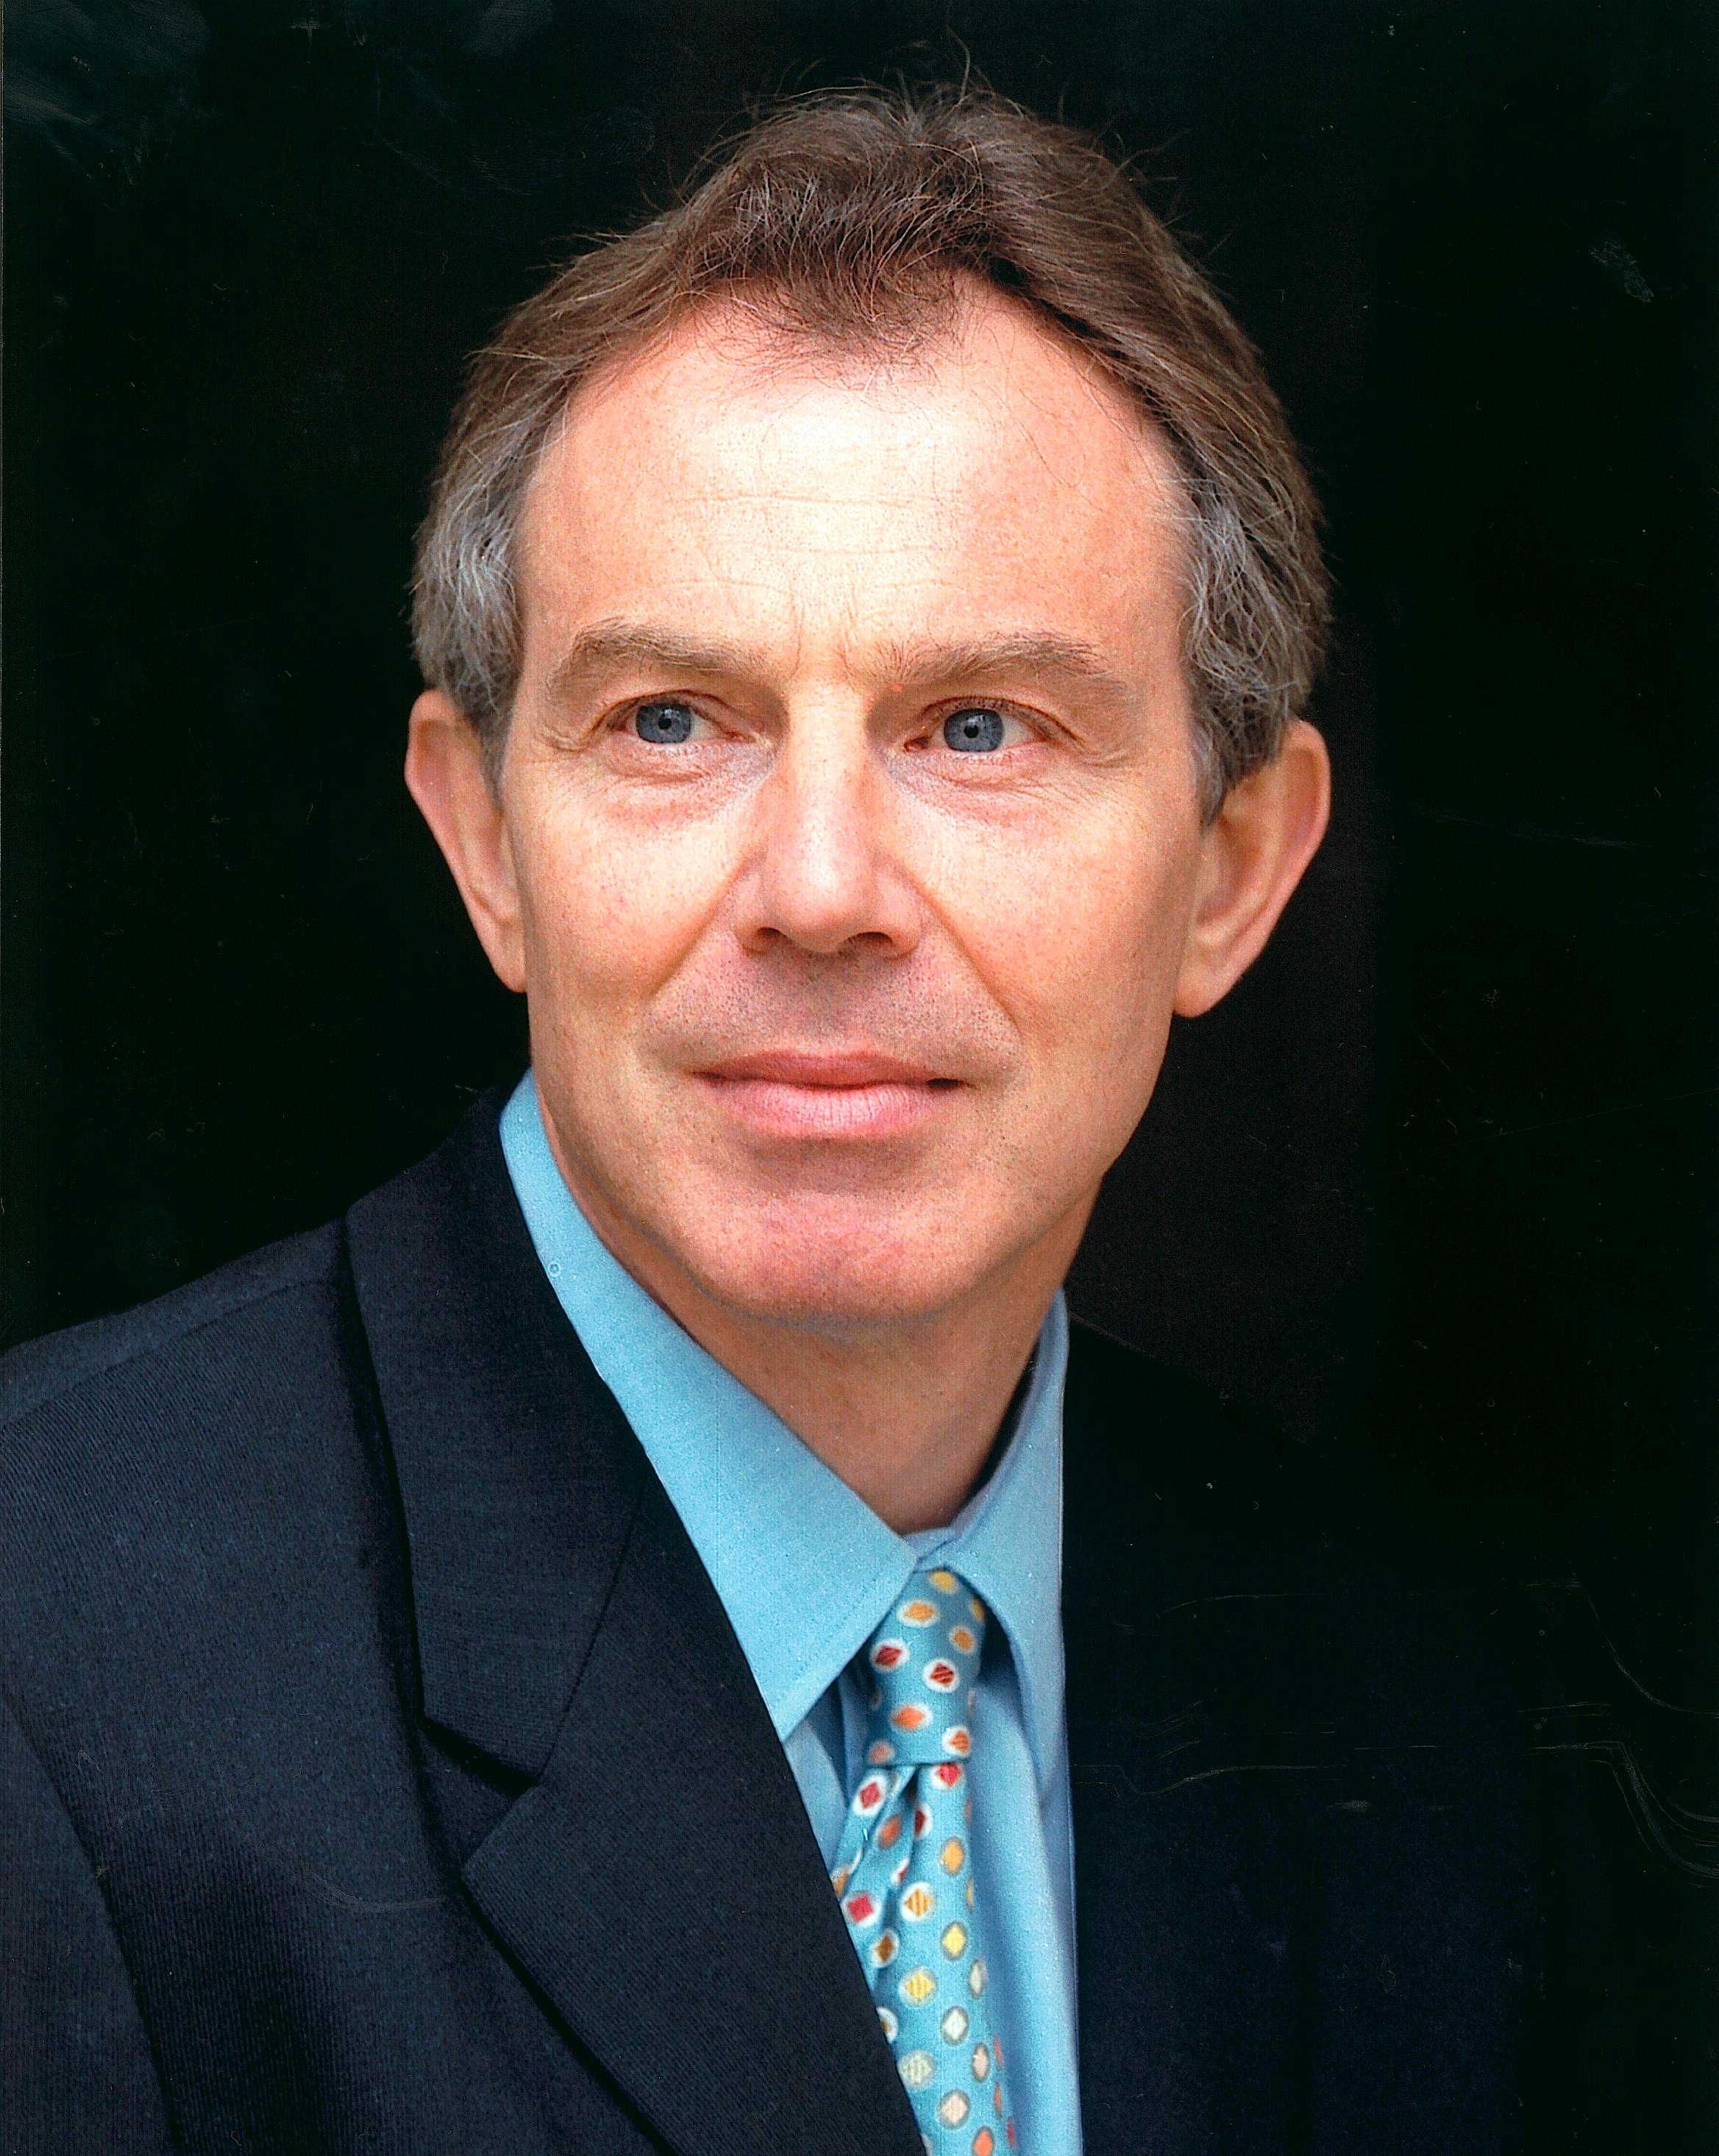 File:Tony blair.jpg